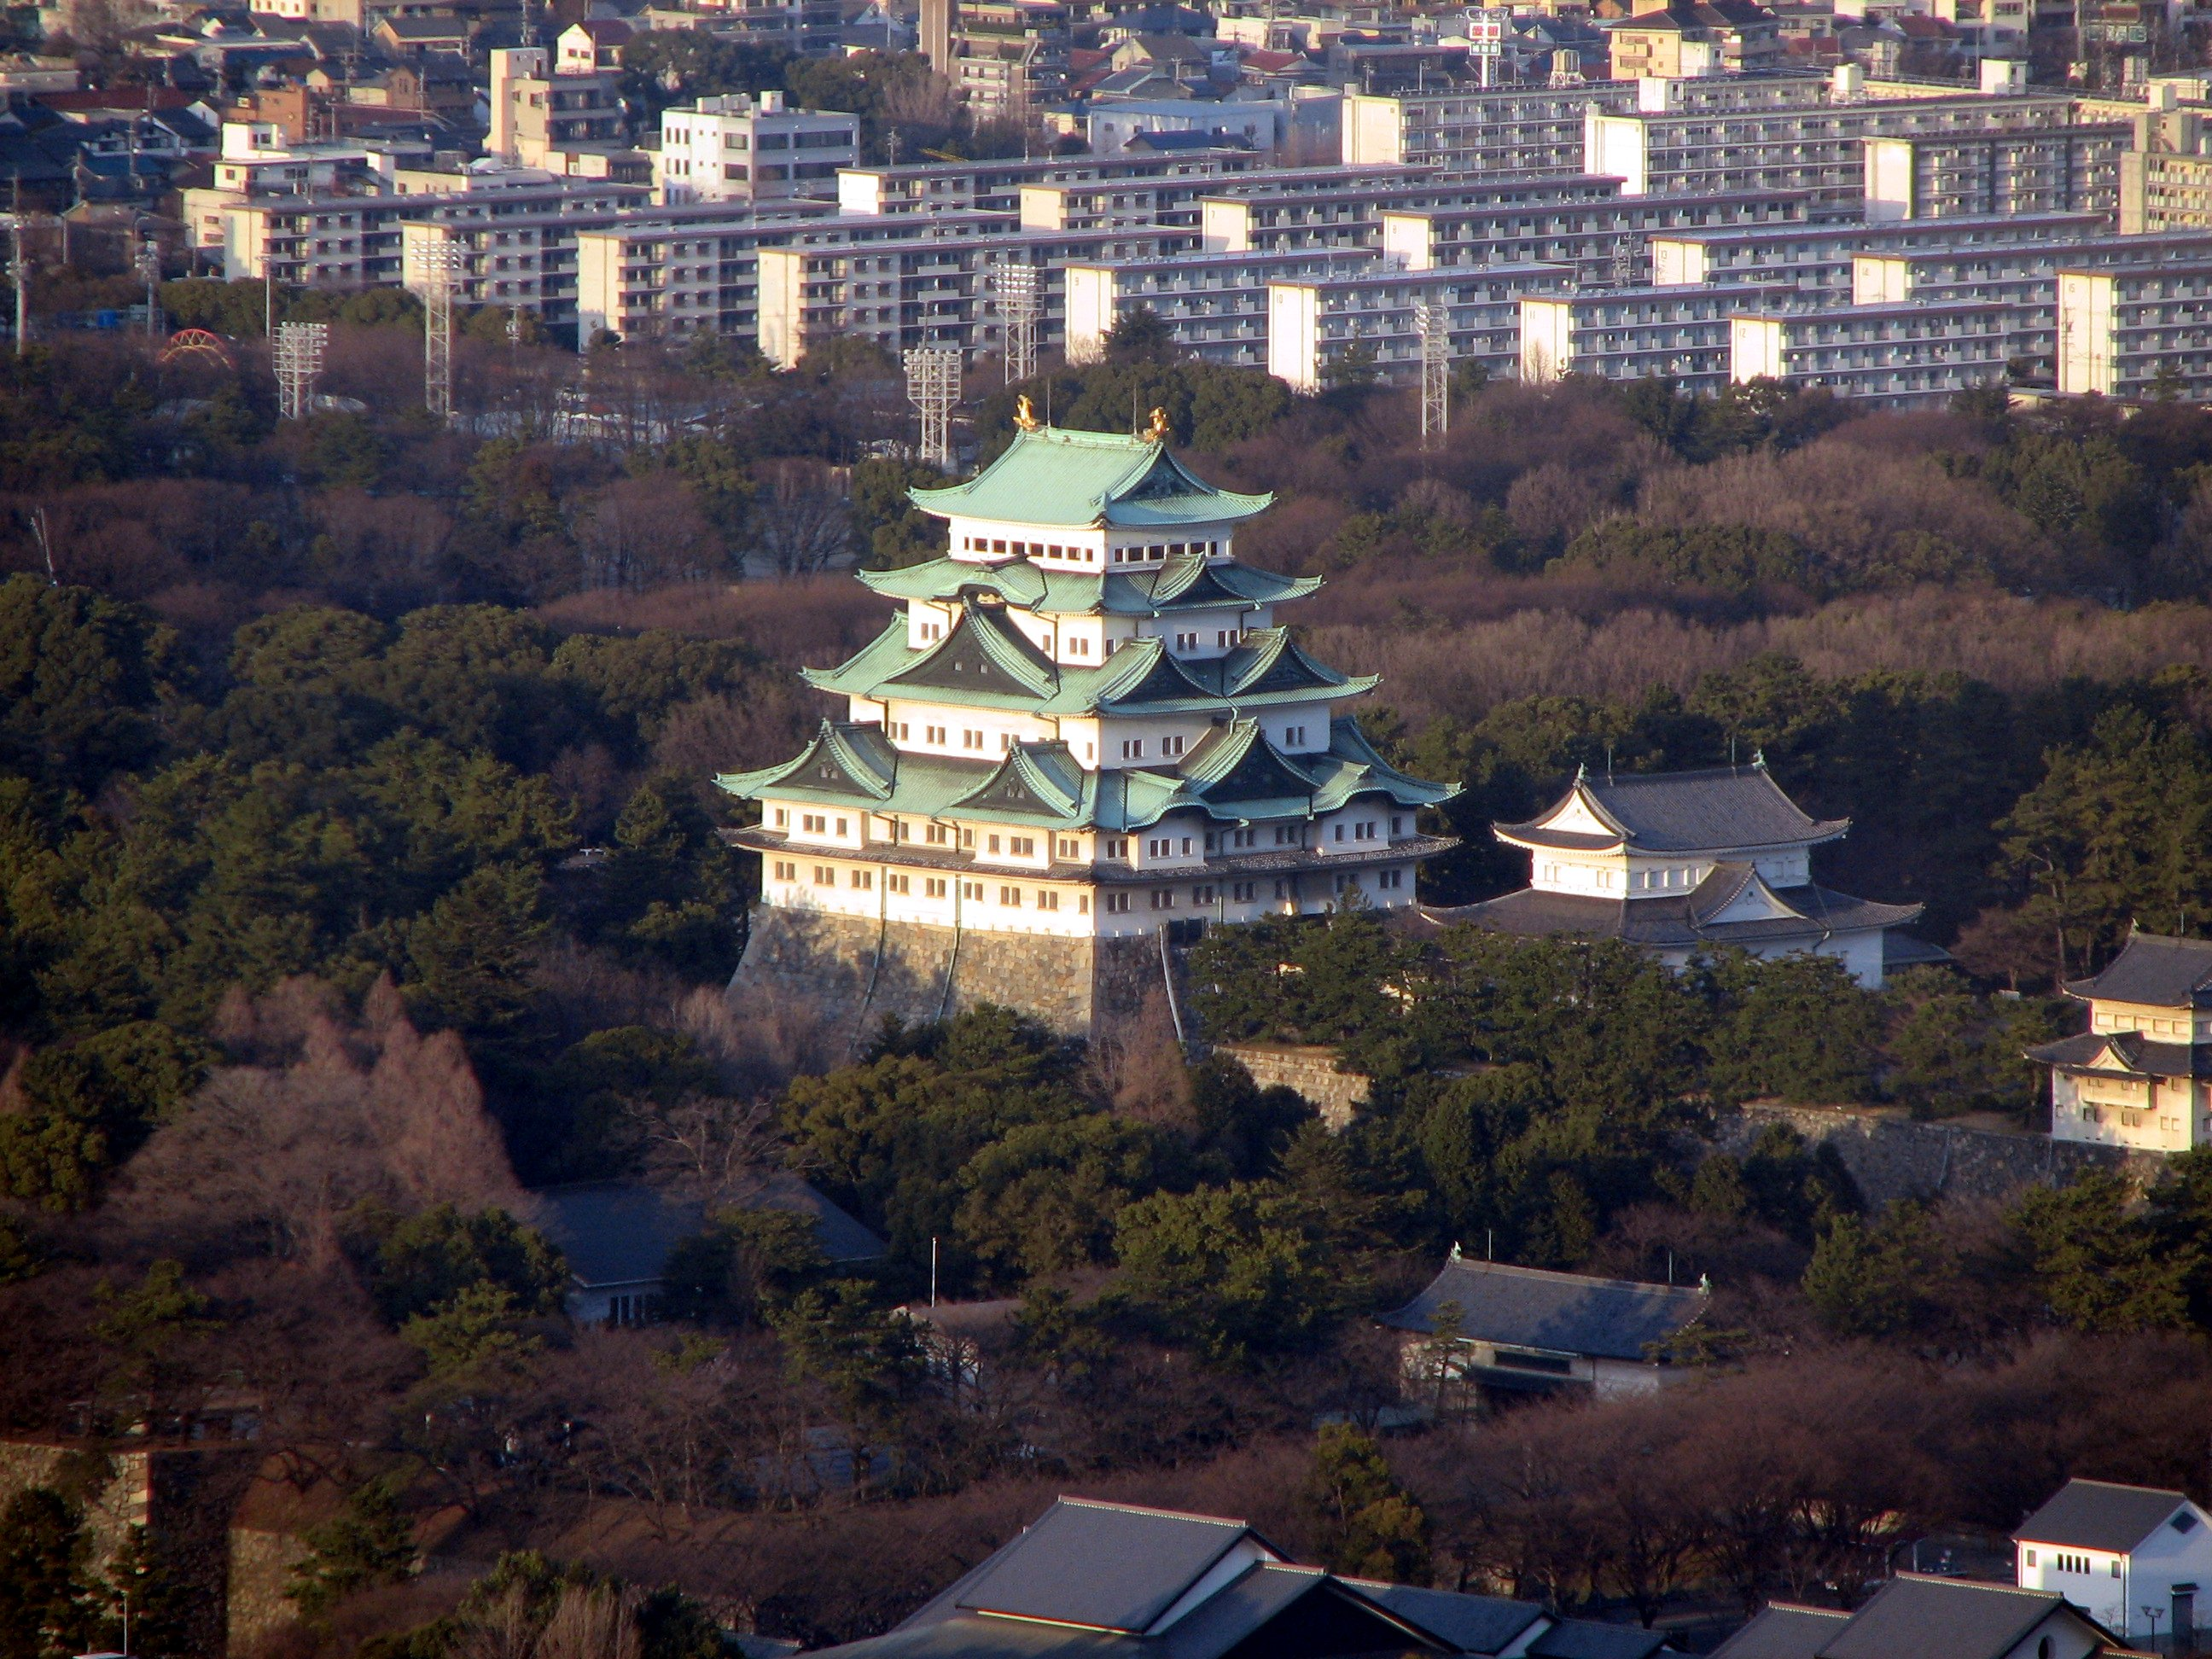 File:Nagoya castle from Midland Square.JPG - Wikimedia Commons